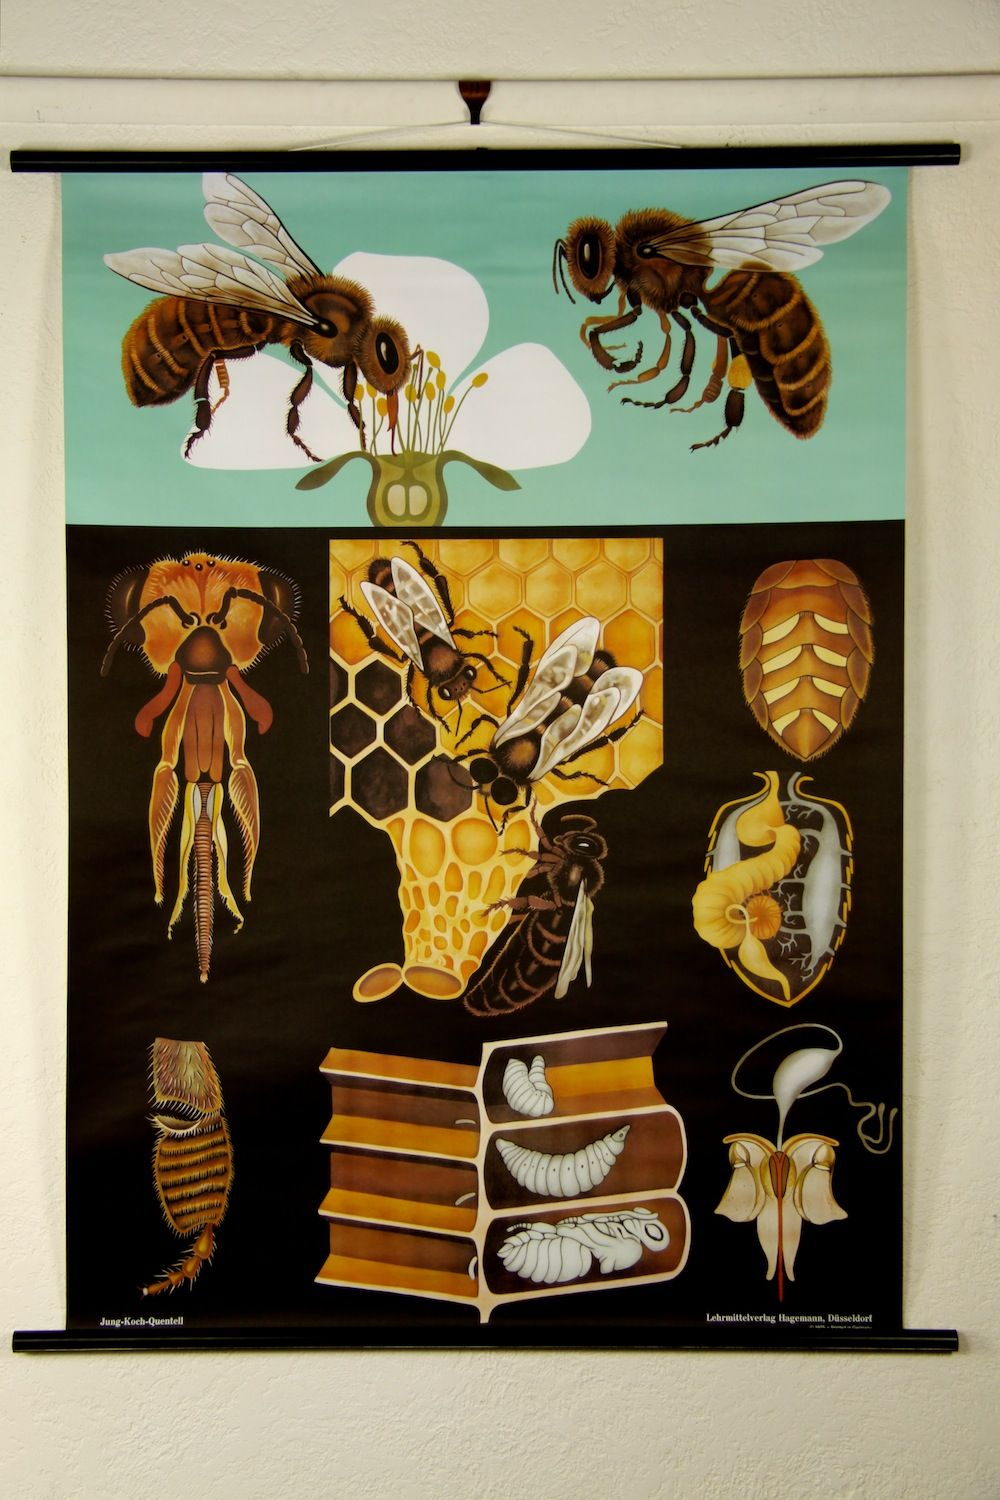 Zoology poster design - Find This Pin And More On Ecology And Nature Honey Bee Zoological Wall Chart Design